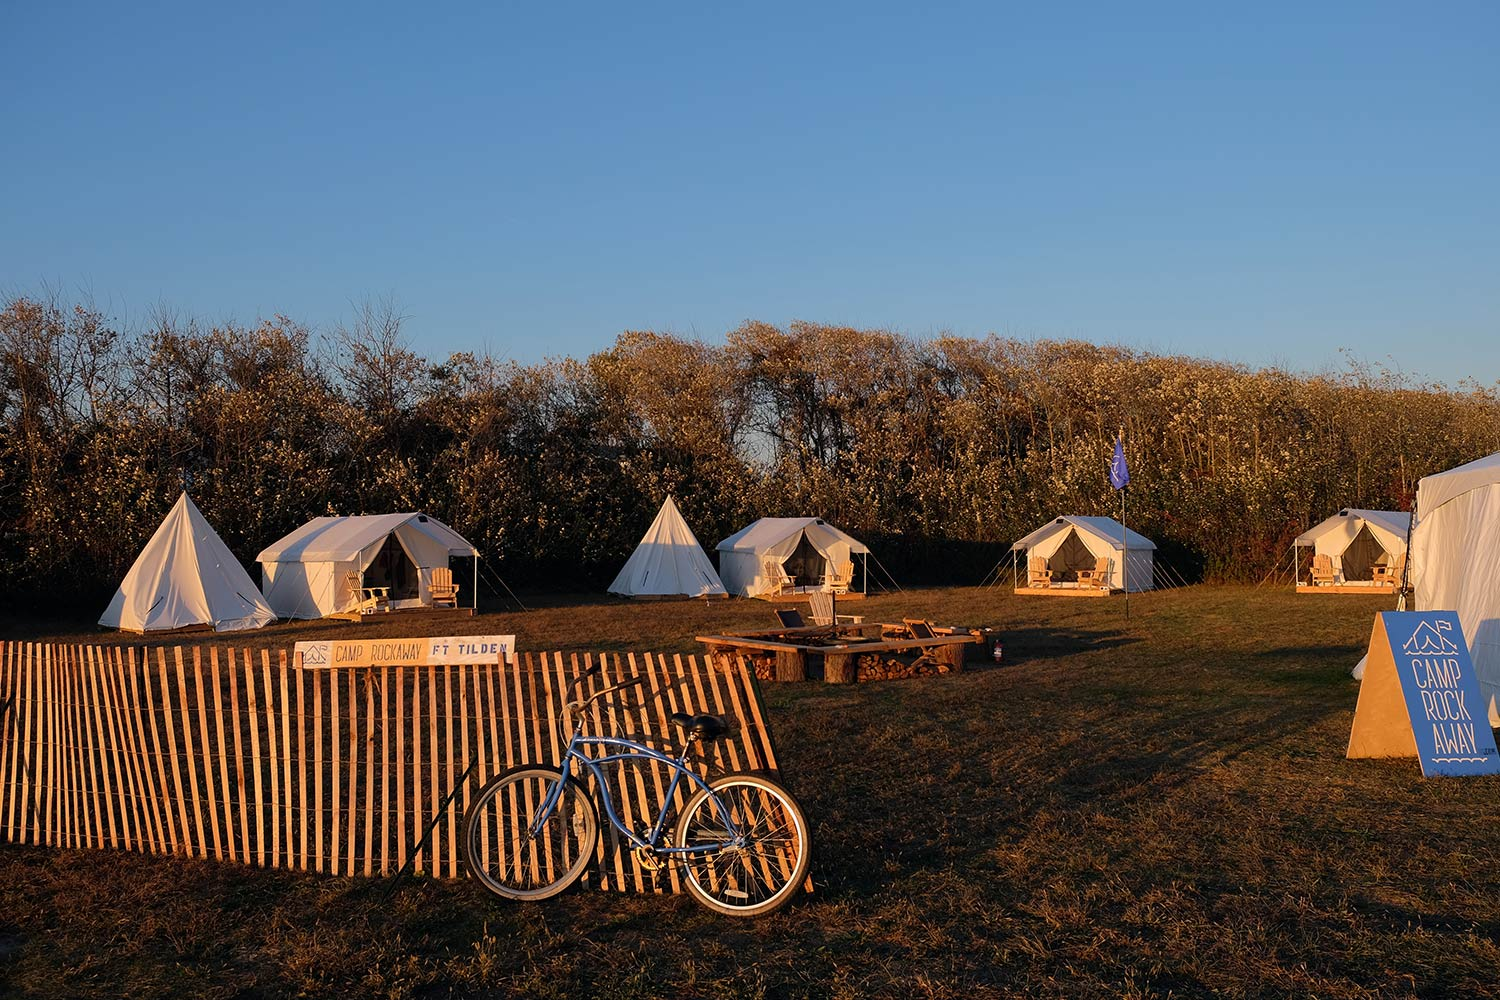 Sun setting over Camp Rockaway at Fort Tilden, where a blue bike rests in the foreground against a fence